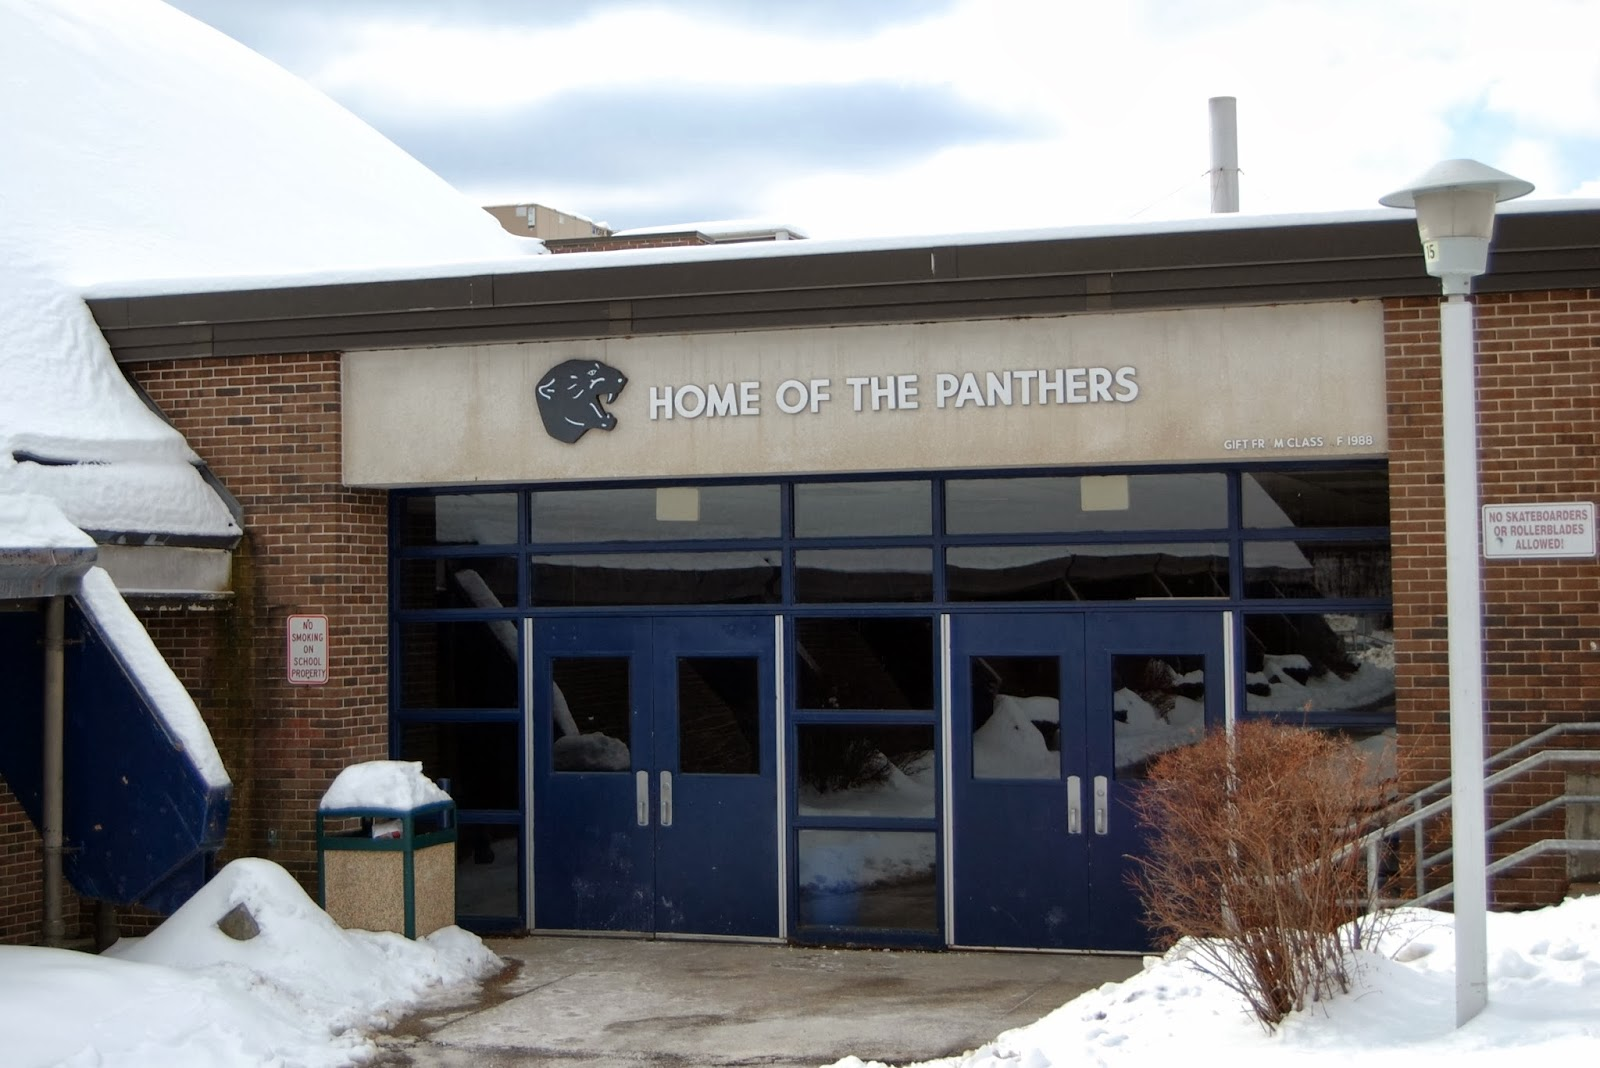 Franklin High School, home of the Panthers